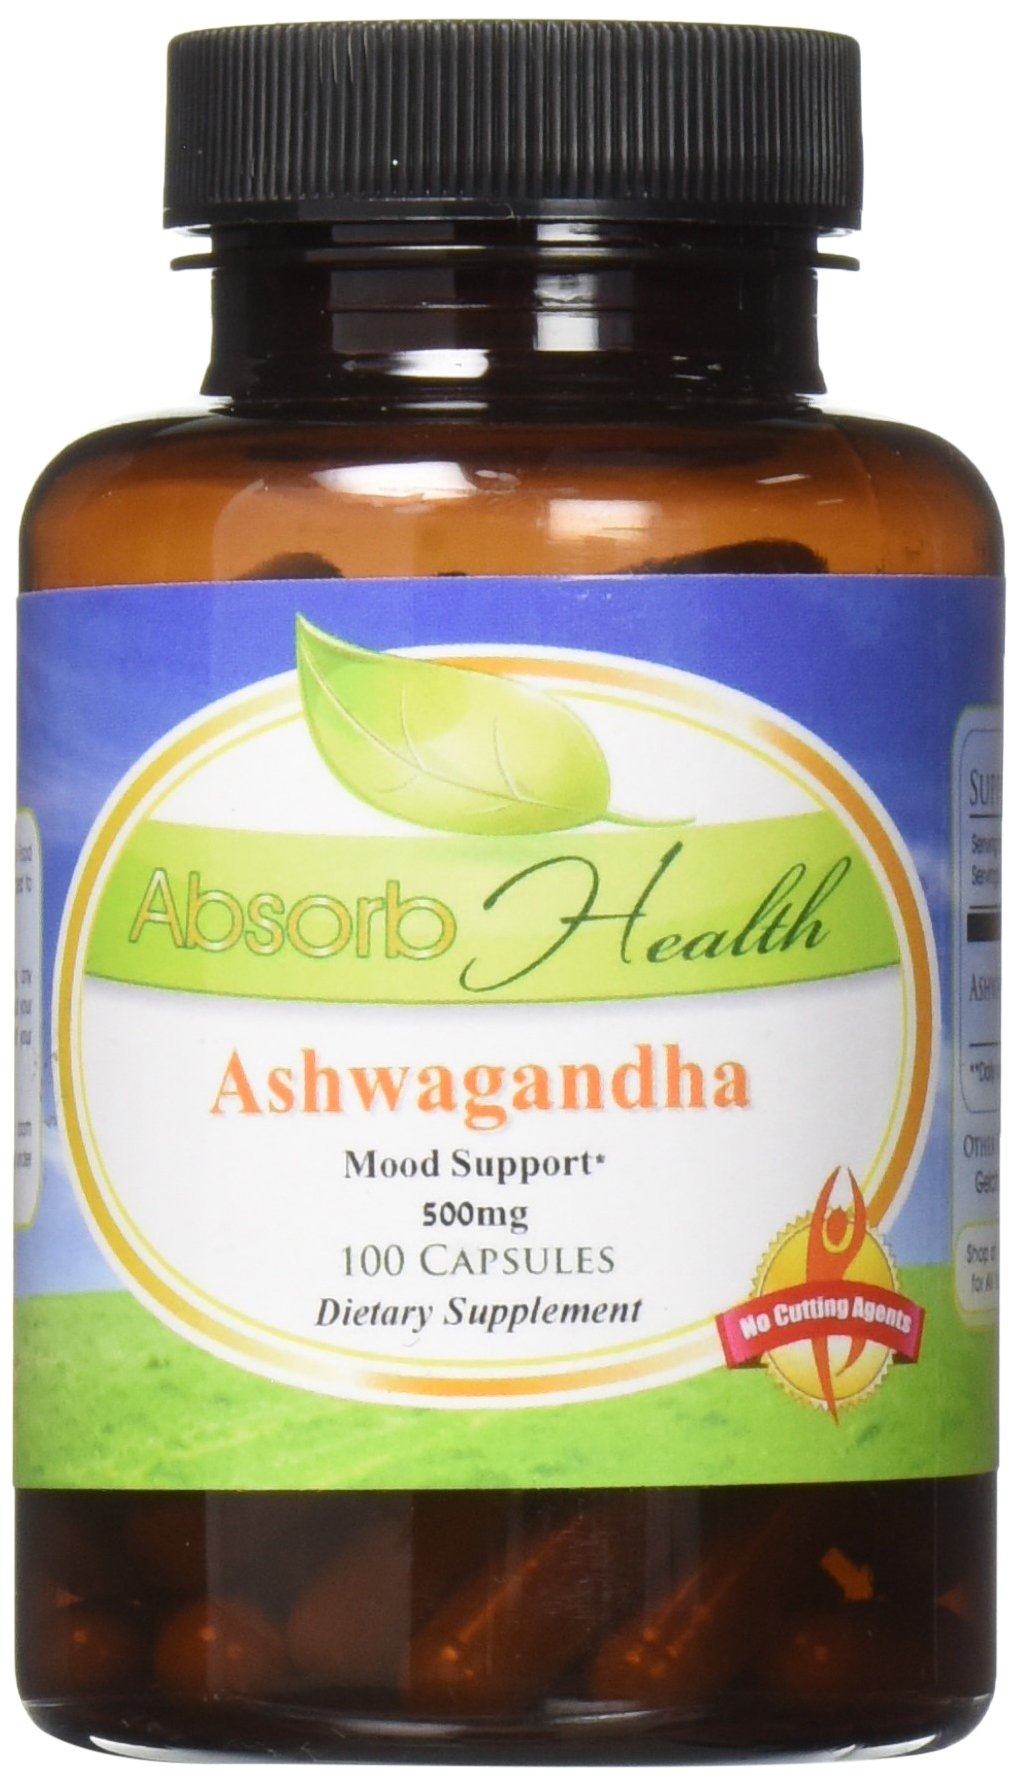 Absorb Health Ashwagandha 10:1 Extract 500 mg Capsules, 100 Count